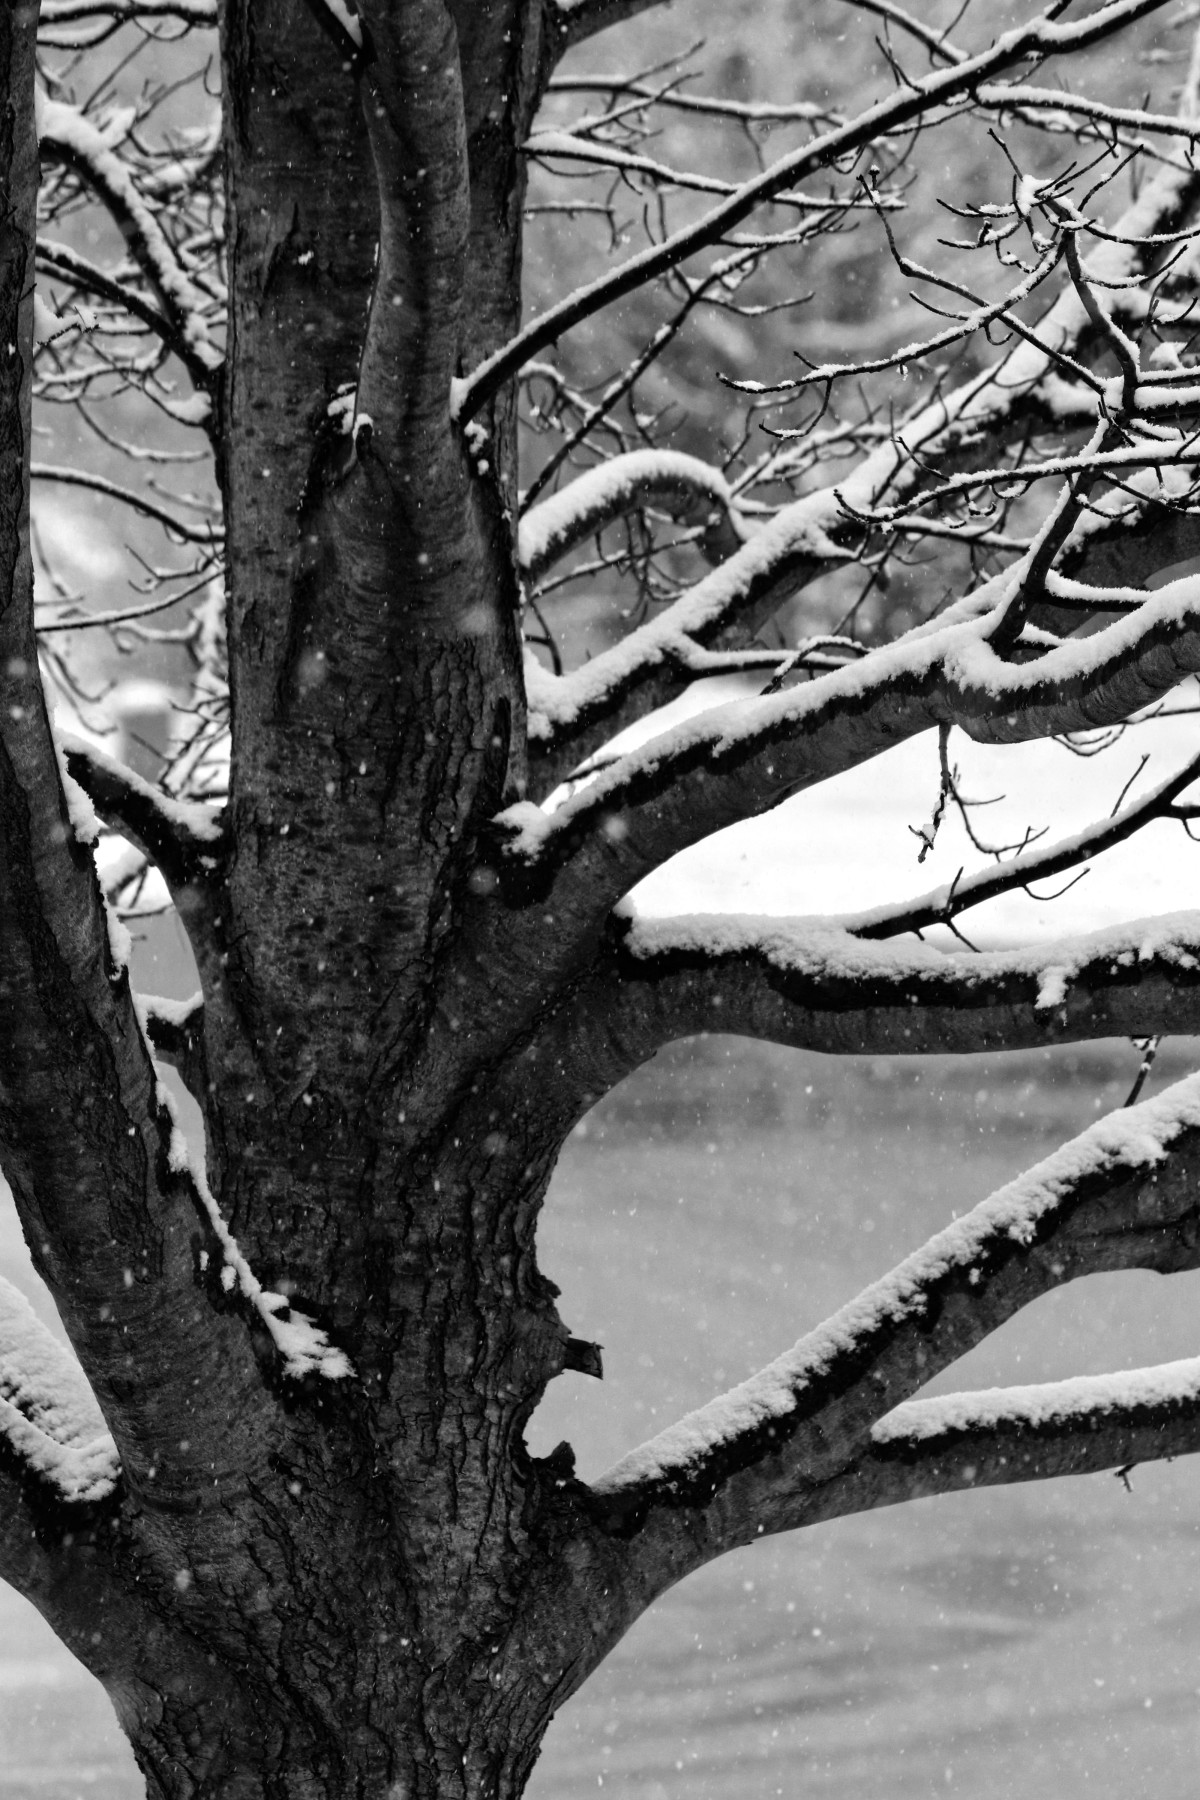 Revisiting: Snowy Tree In Black & White